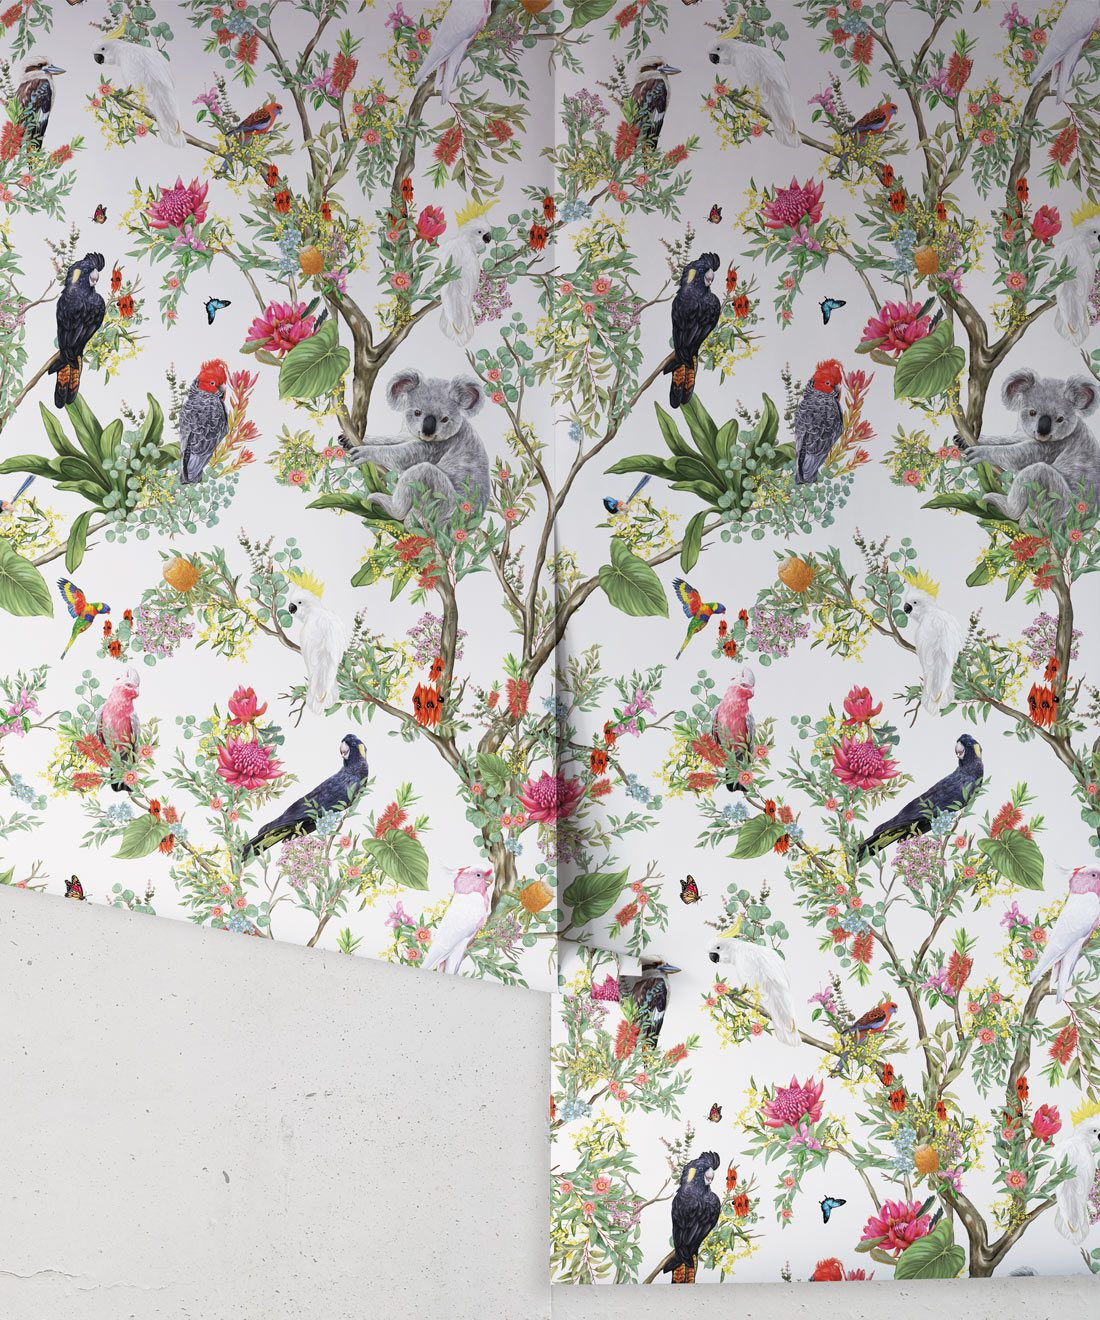 Australia Wallpaper • Cockatoos, Koalas, Parrots, Finches • Milton & King USA • Canvas Wallpaper Roll